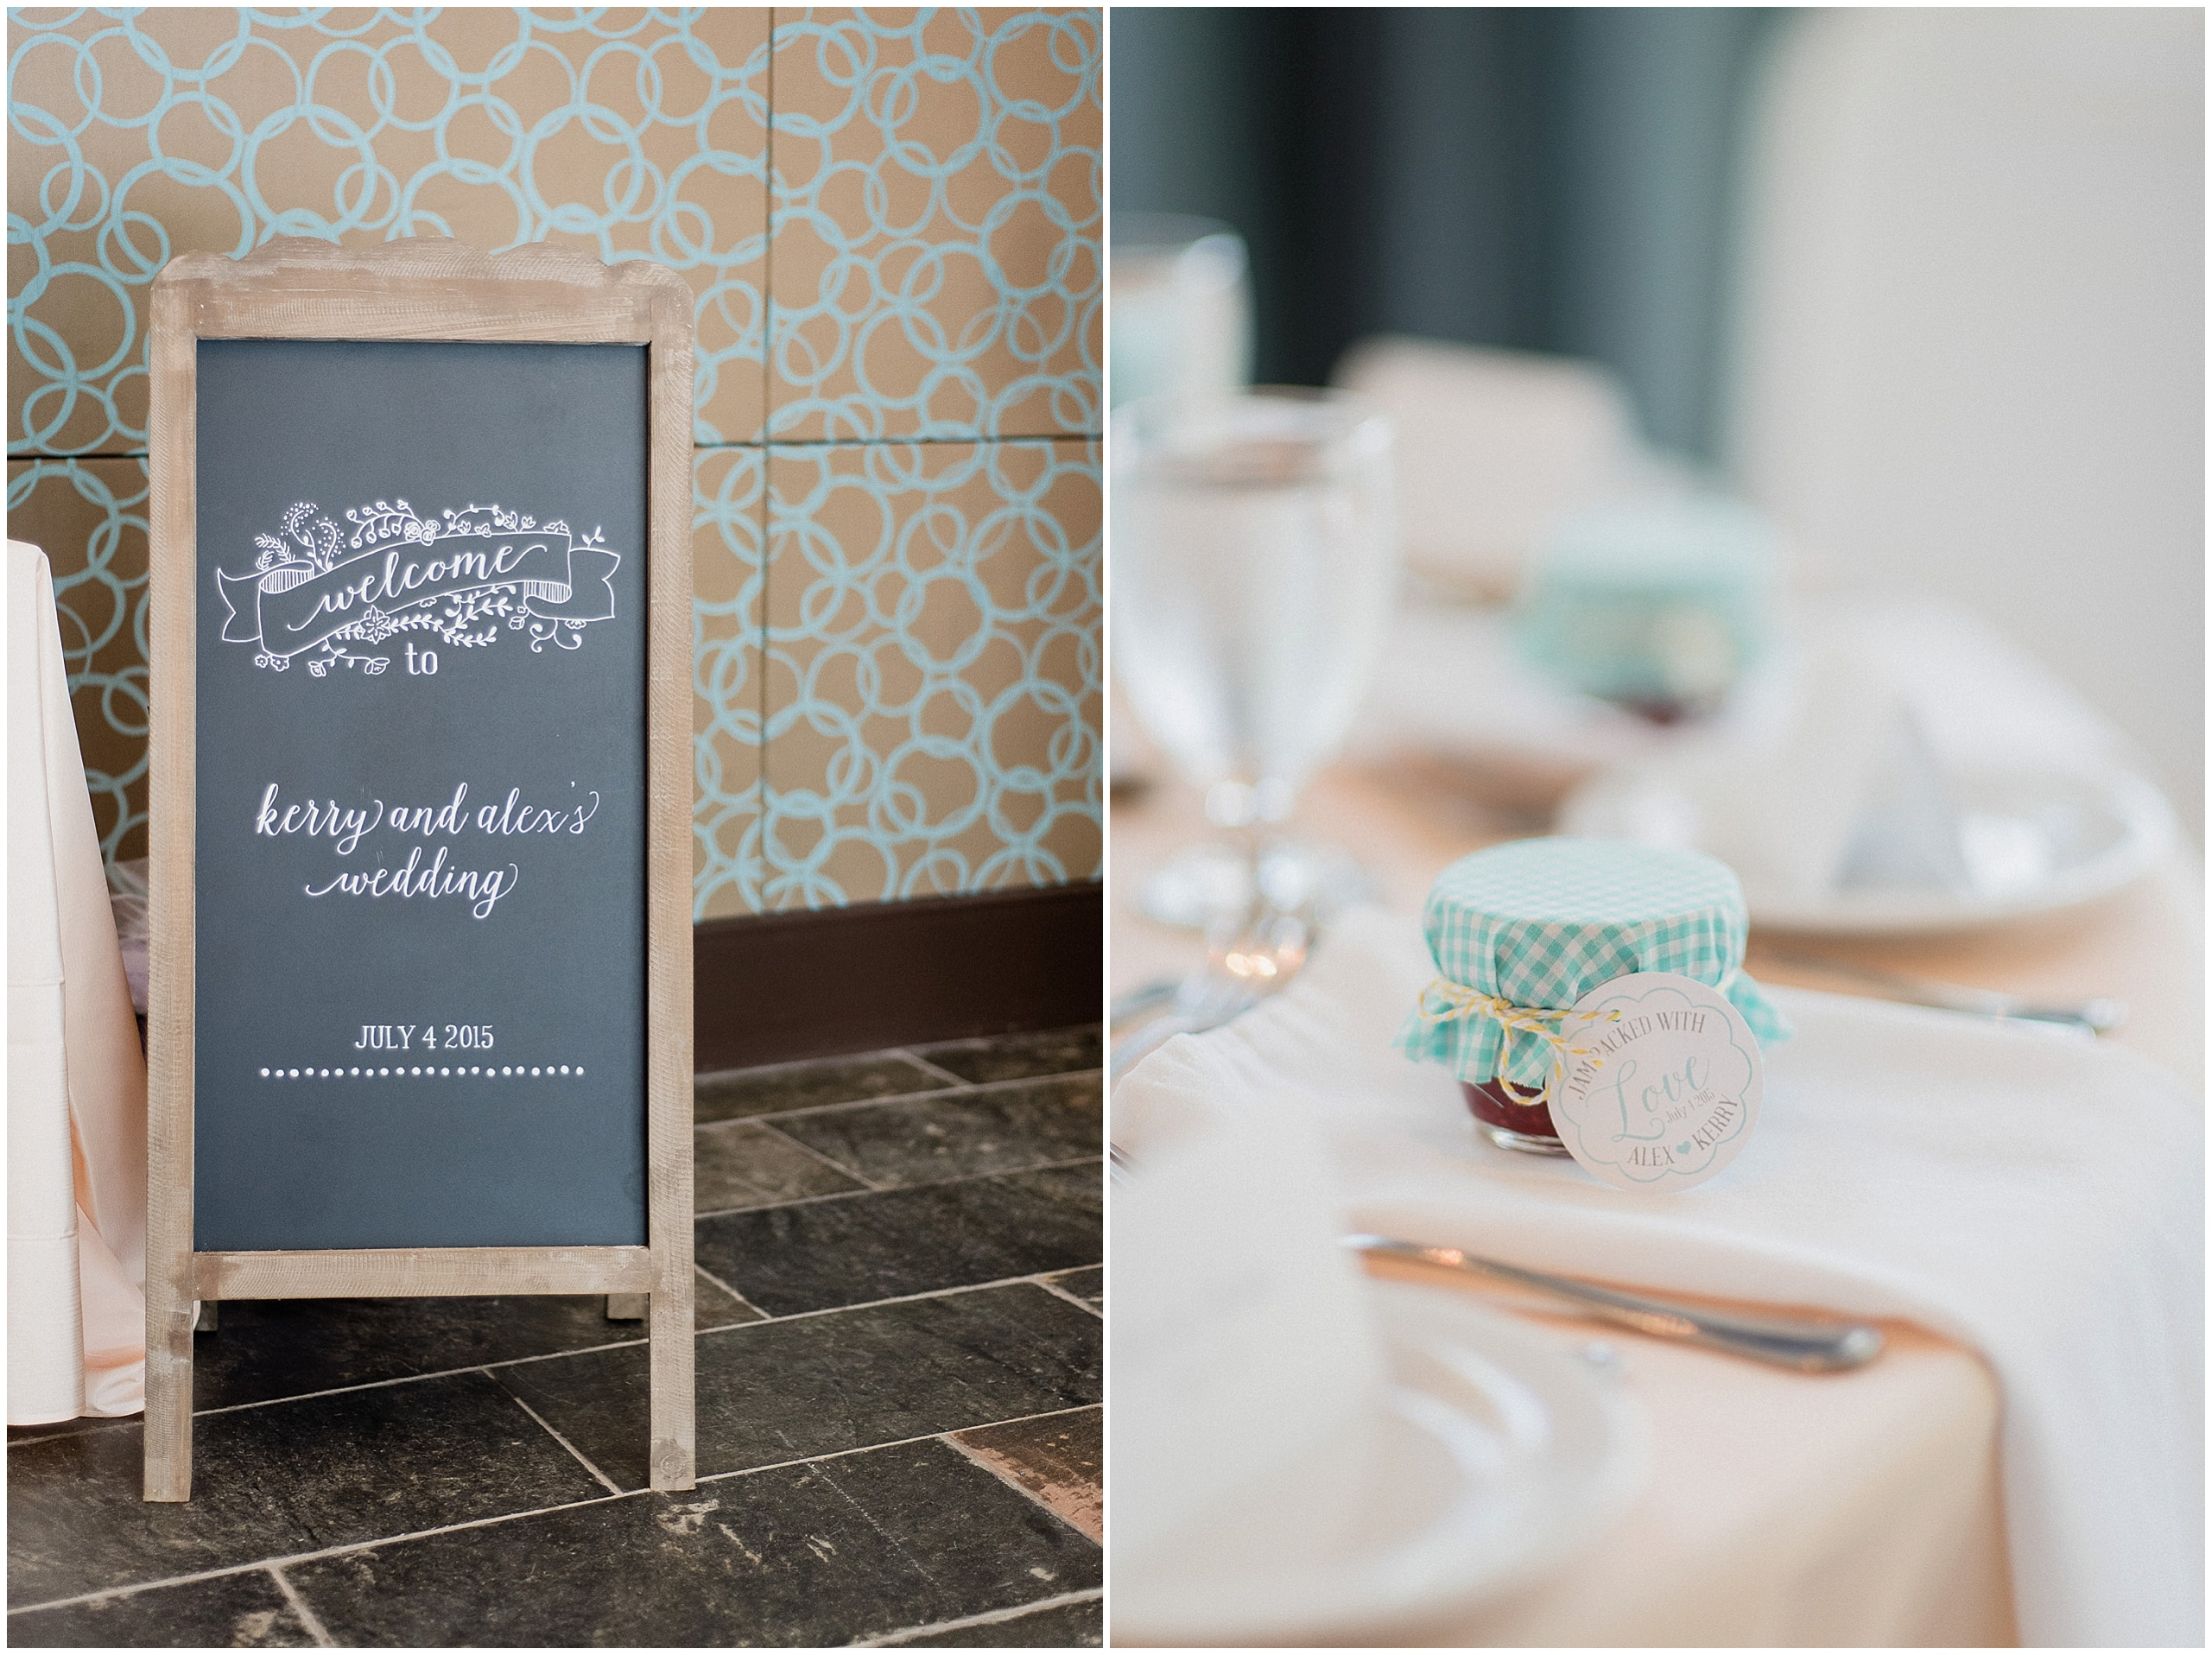 Wedding chalkboard sign and jam favours photographed by Jenn Kavanagh Photography